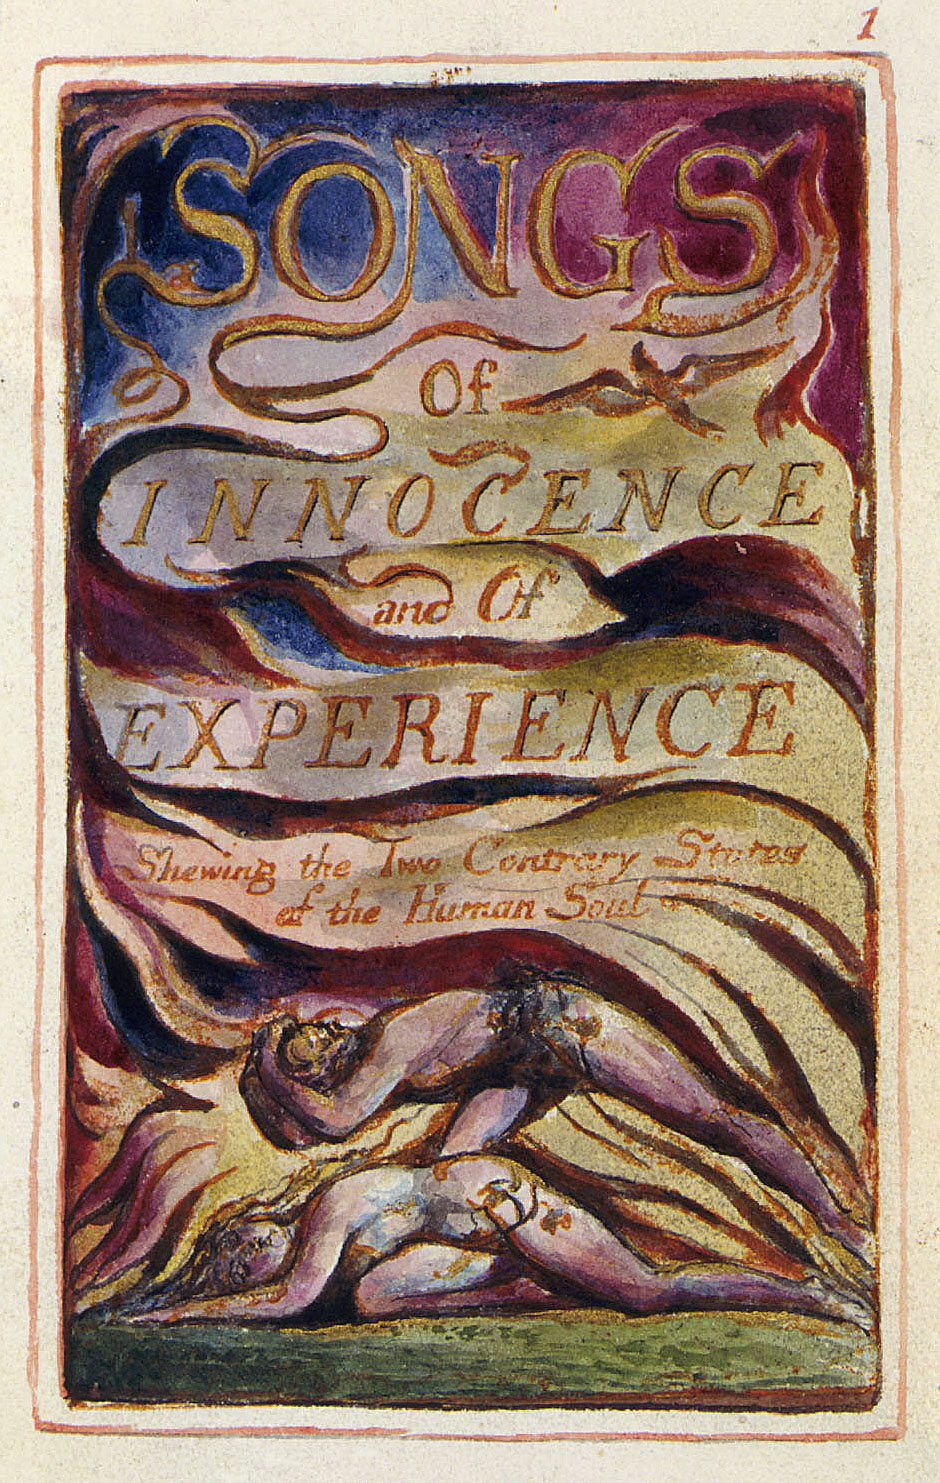 http://upload.wikimedia.org/wikipedia/commons/c/c3/Blake_sie_cover.jpg